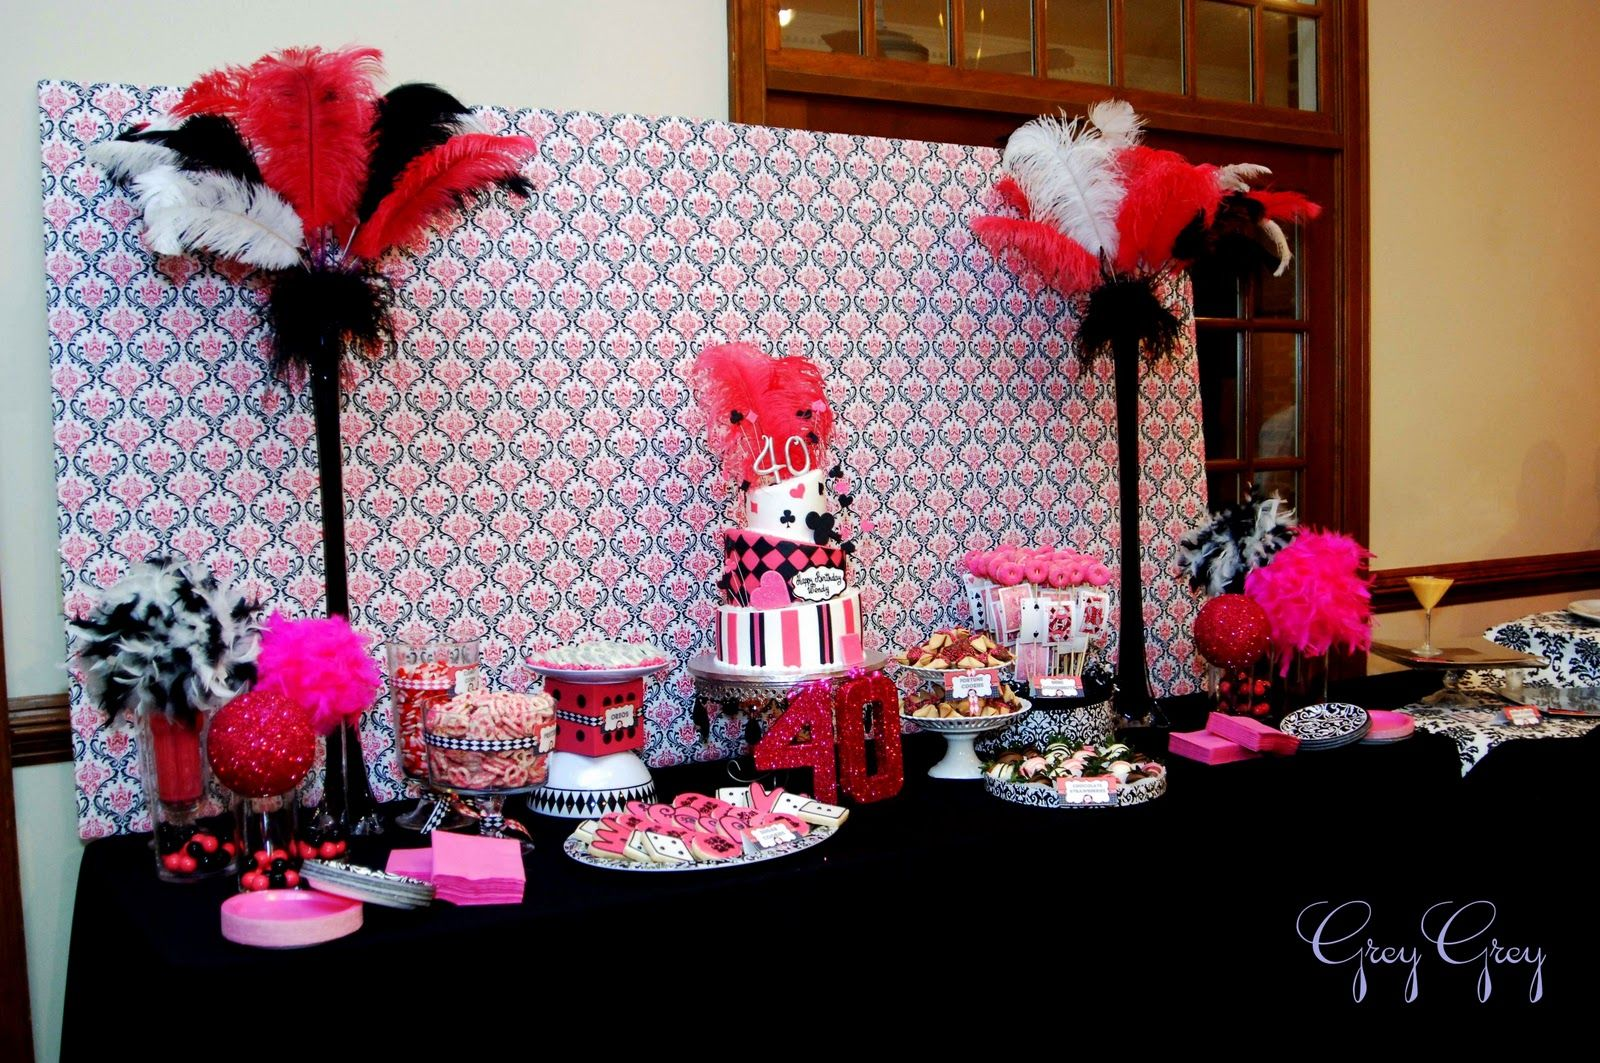 40th Birthday Decorations For Her Greygrey Designs My Parties Hot Pink Glamorous Casino 40th